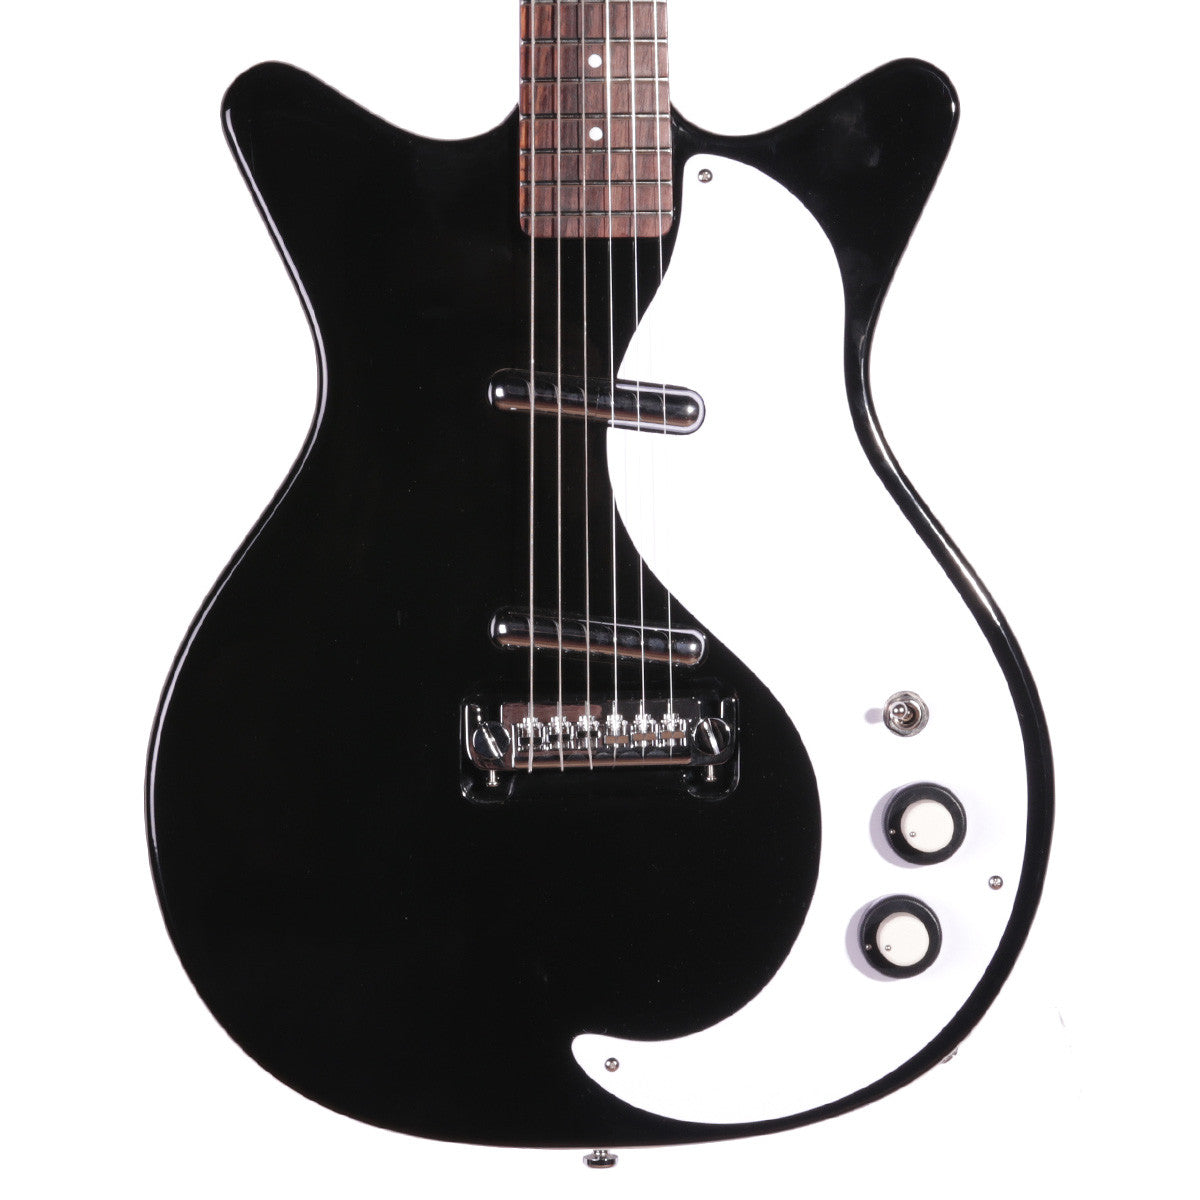 Danelectro 63 Wiring Diagram Wire Data Schema Moreover Guitar Pickup Diagrams In Addition Electric Bill Nash Sony Cdx Gt540ui Silvertone 1448